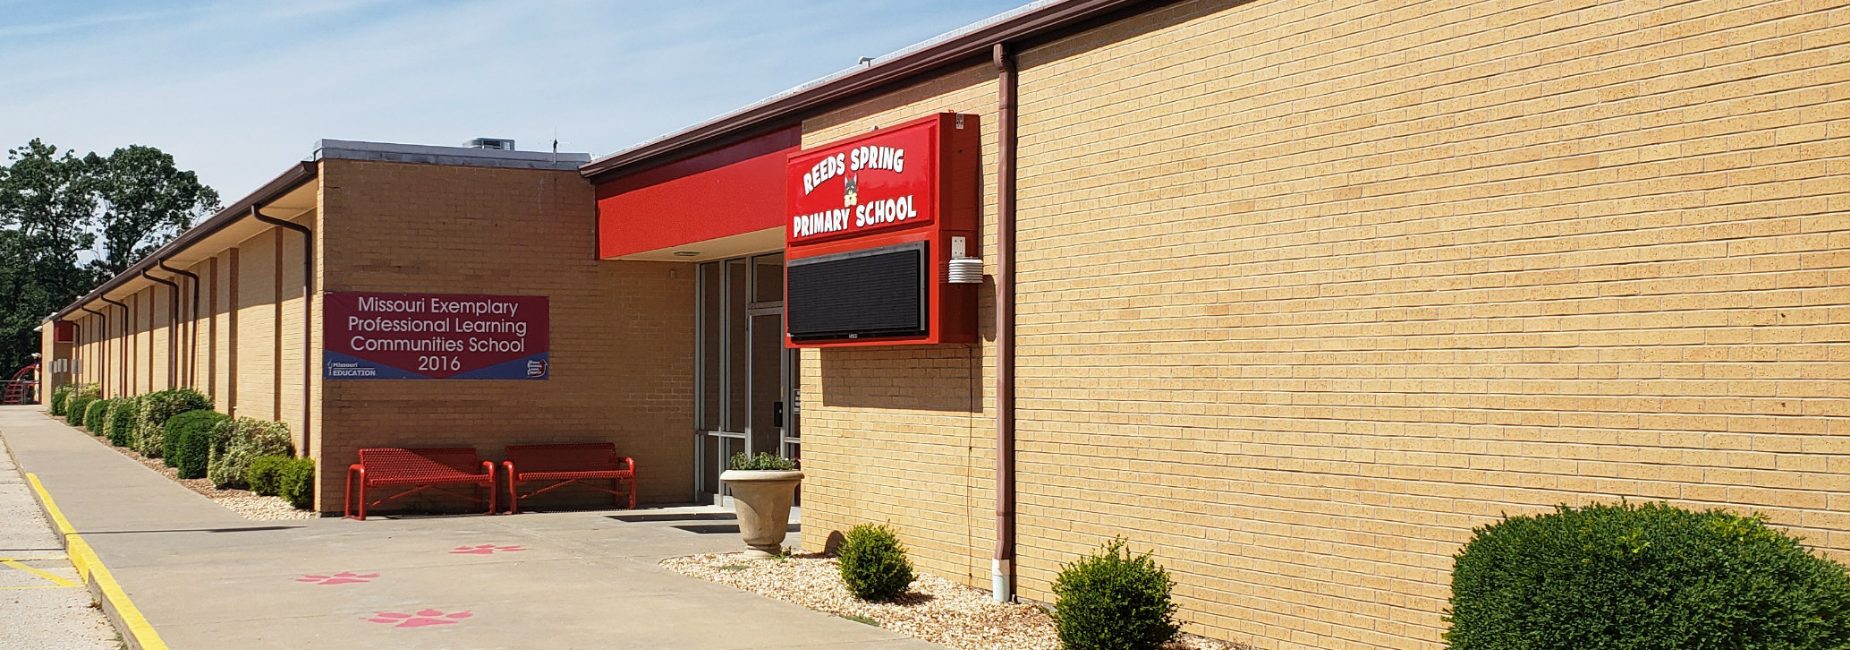 Reeds Spring Primary School